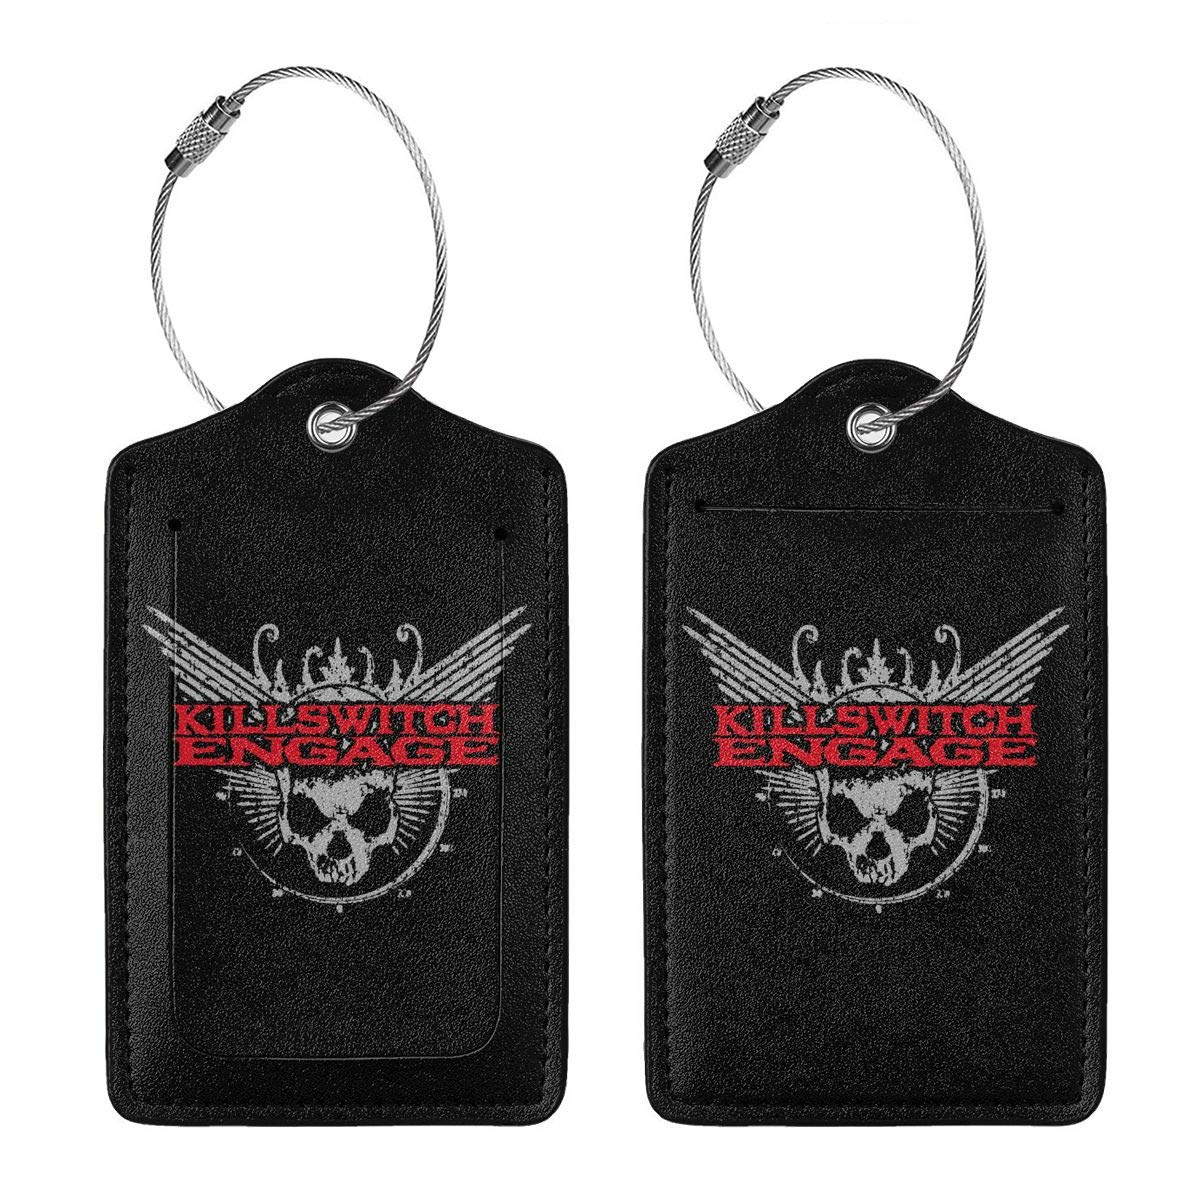 Killswitch Engage Logo Leather Luggage Tag Travel ID Label For Baggage Suitcase